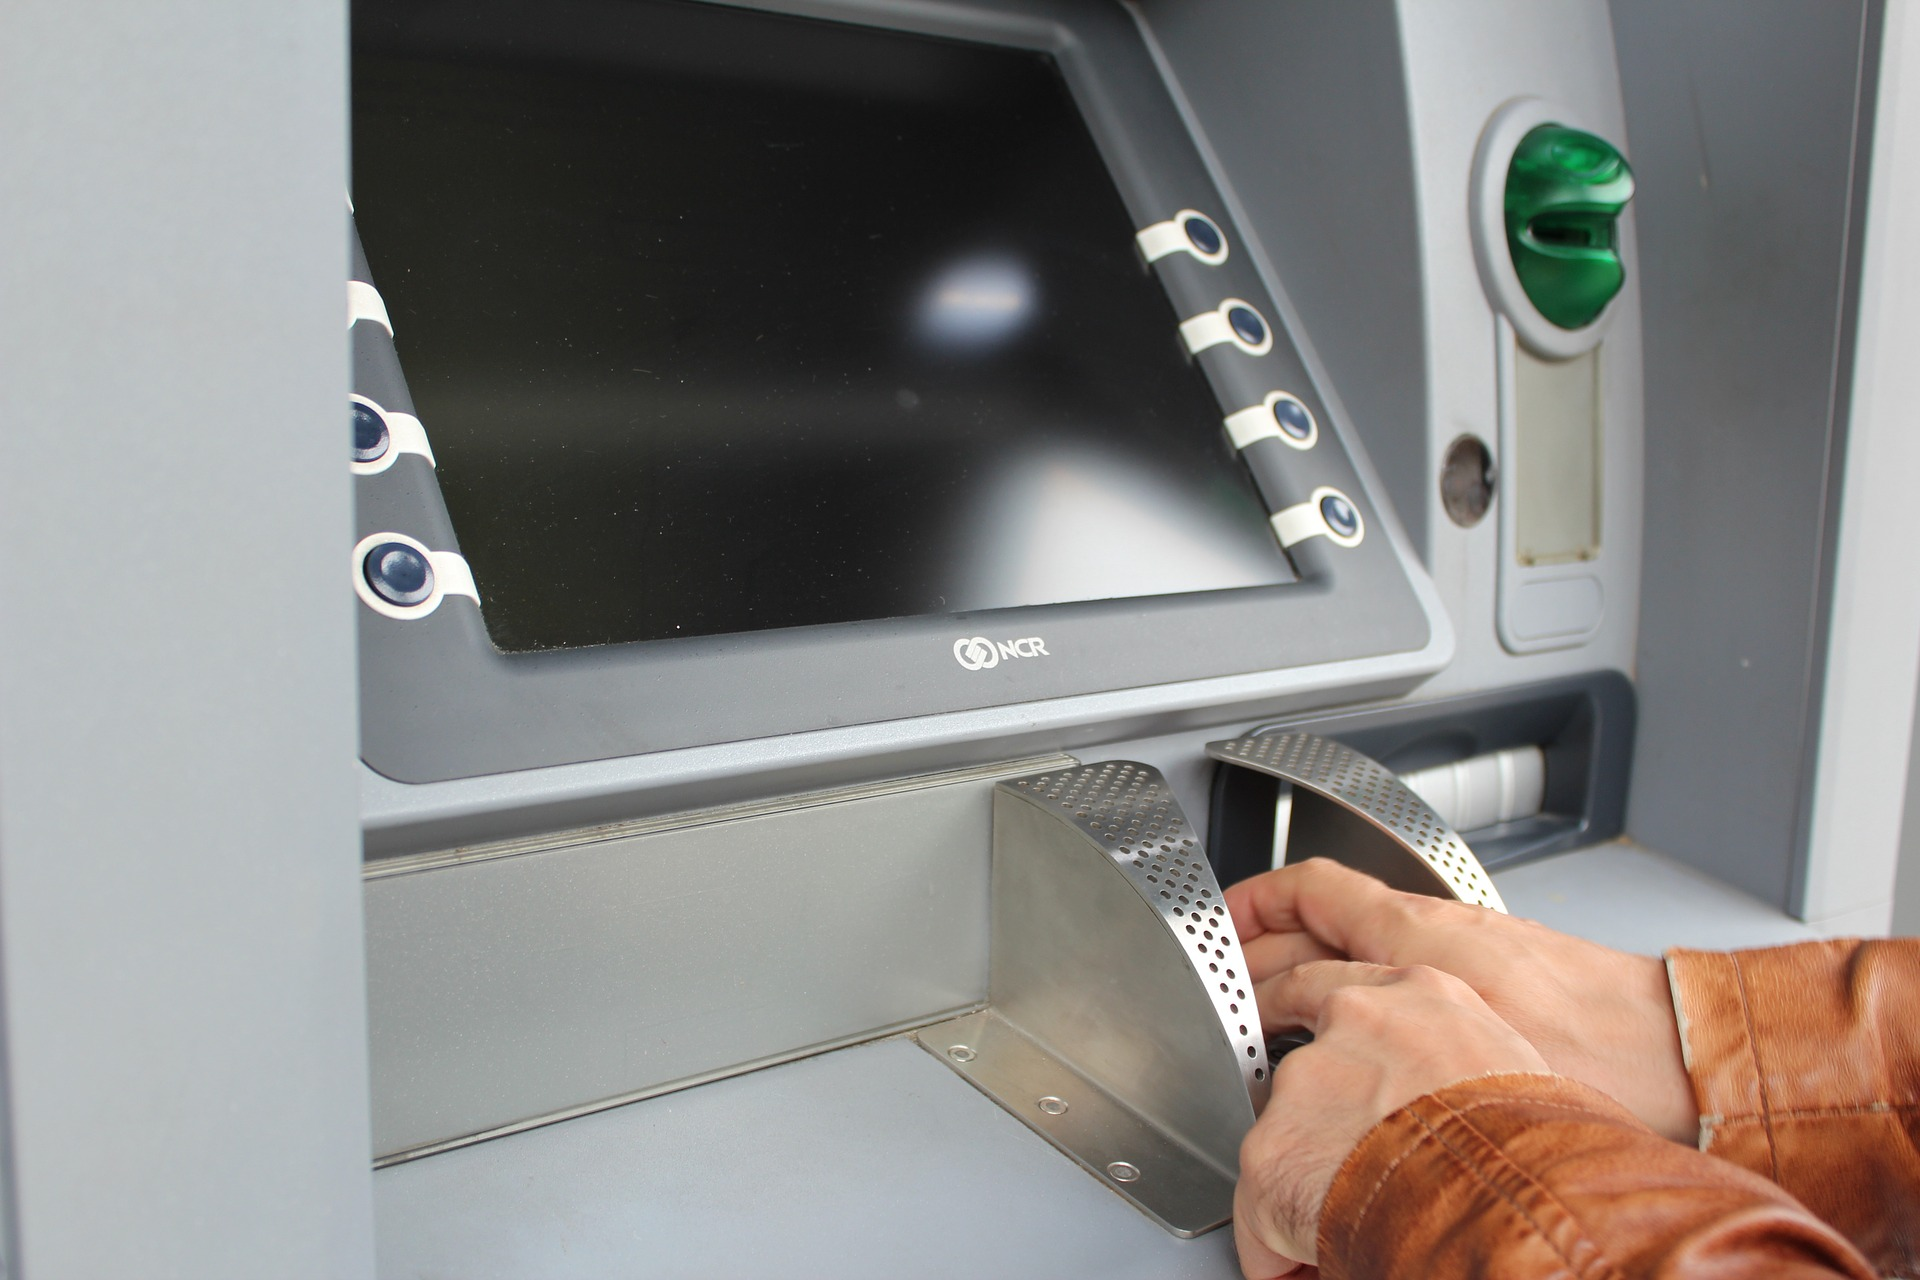 Banks with the most atms